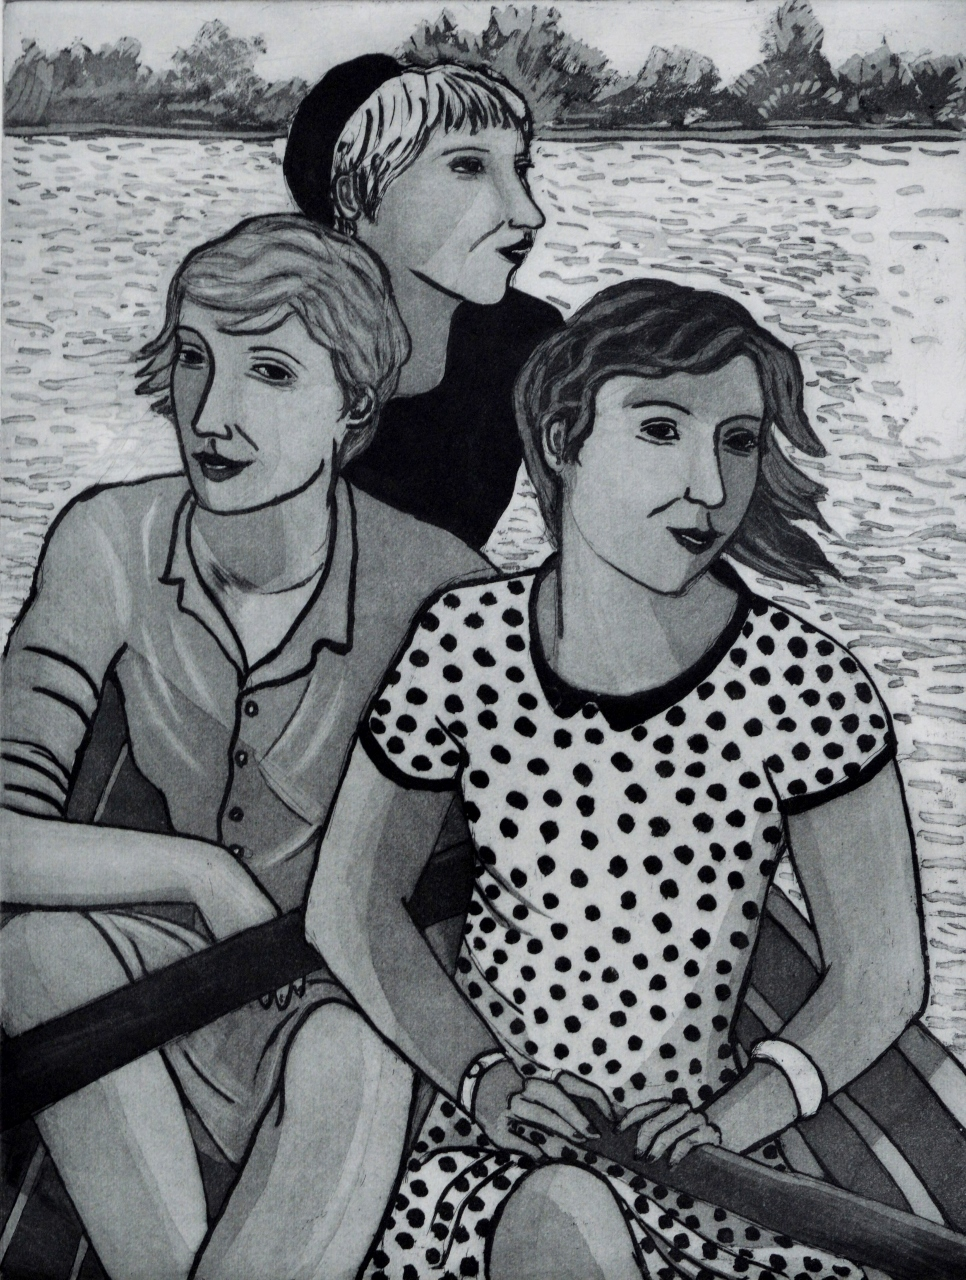 Artwork - Three Girls In A Boat Etching and sugar lift Print | Sandra Millar - Etching and sugar lift